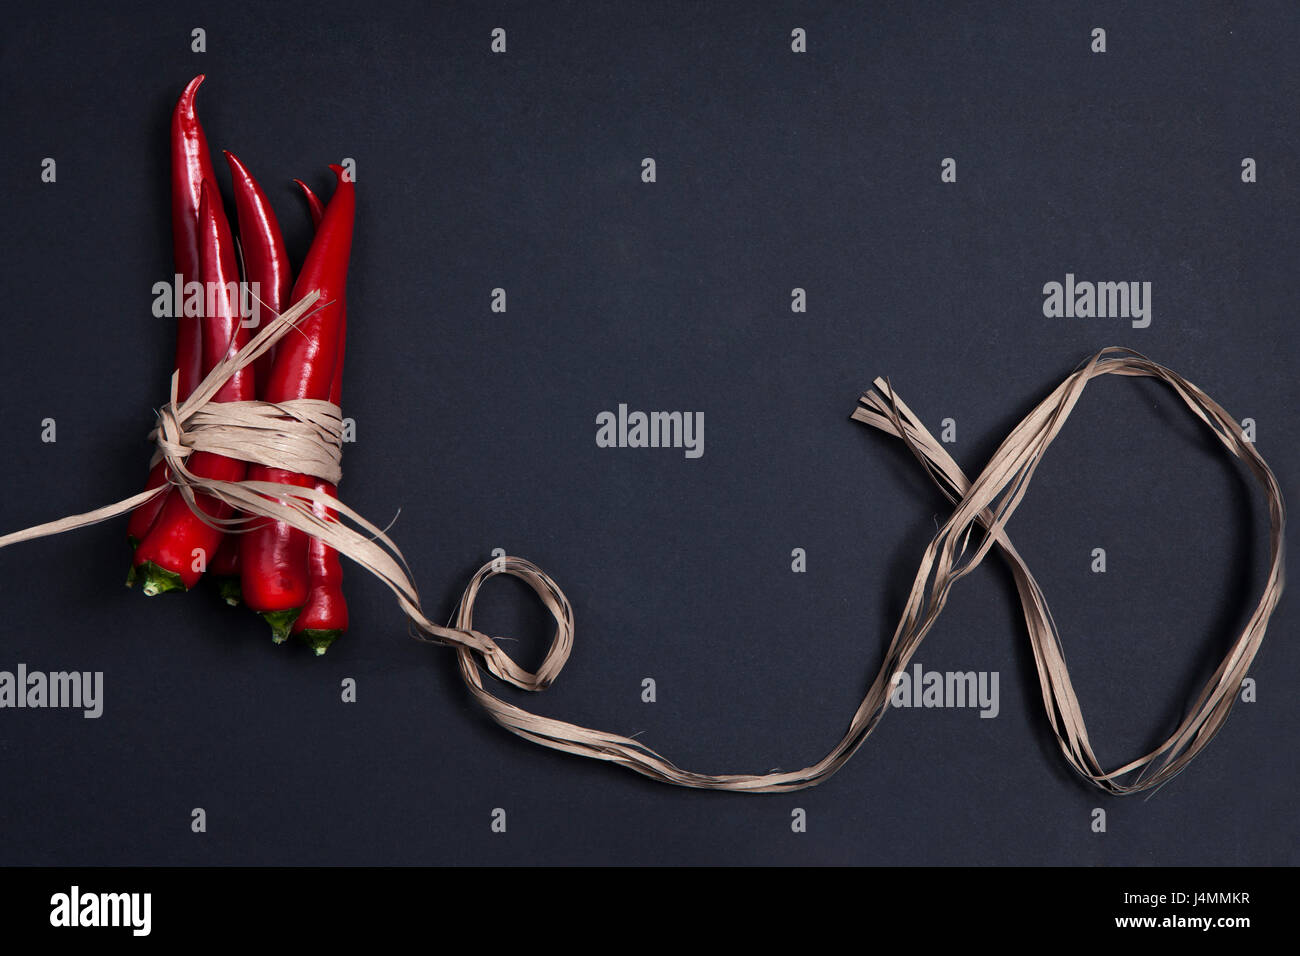 Postcards for recipes. Red chile pepper, tied with twine, on a gray napkin. Copy space - Stock Image